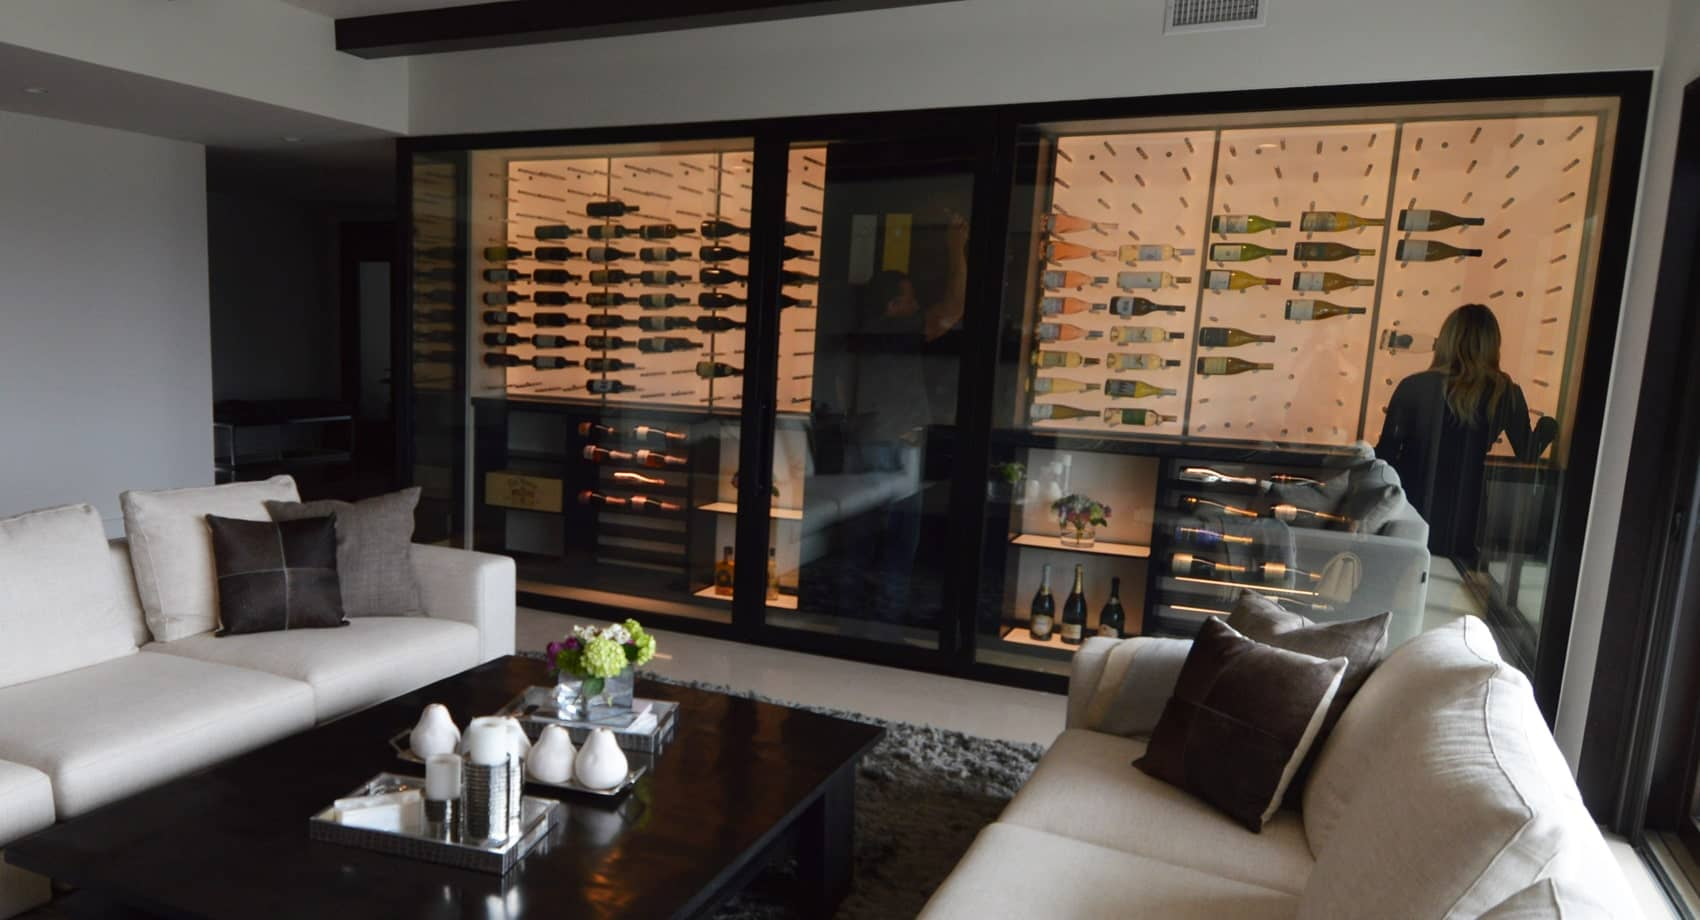 Mellow wine cellar lighting coming from the white backpanel radiates that romantic vibe. A perfect scene for a dinner date with your spouse or your friends and family.